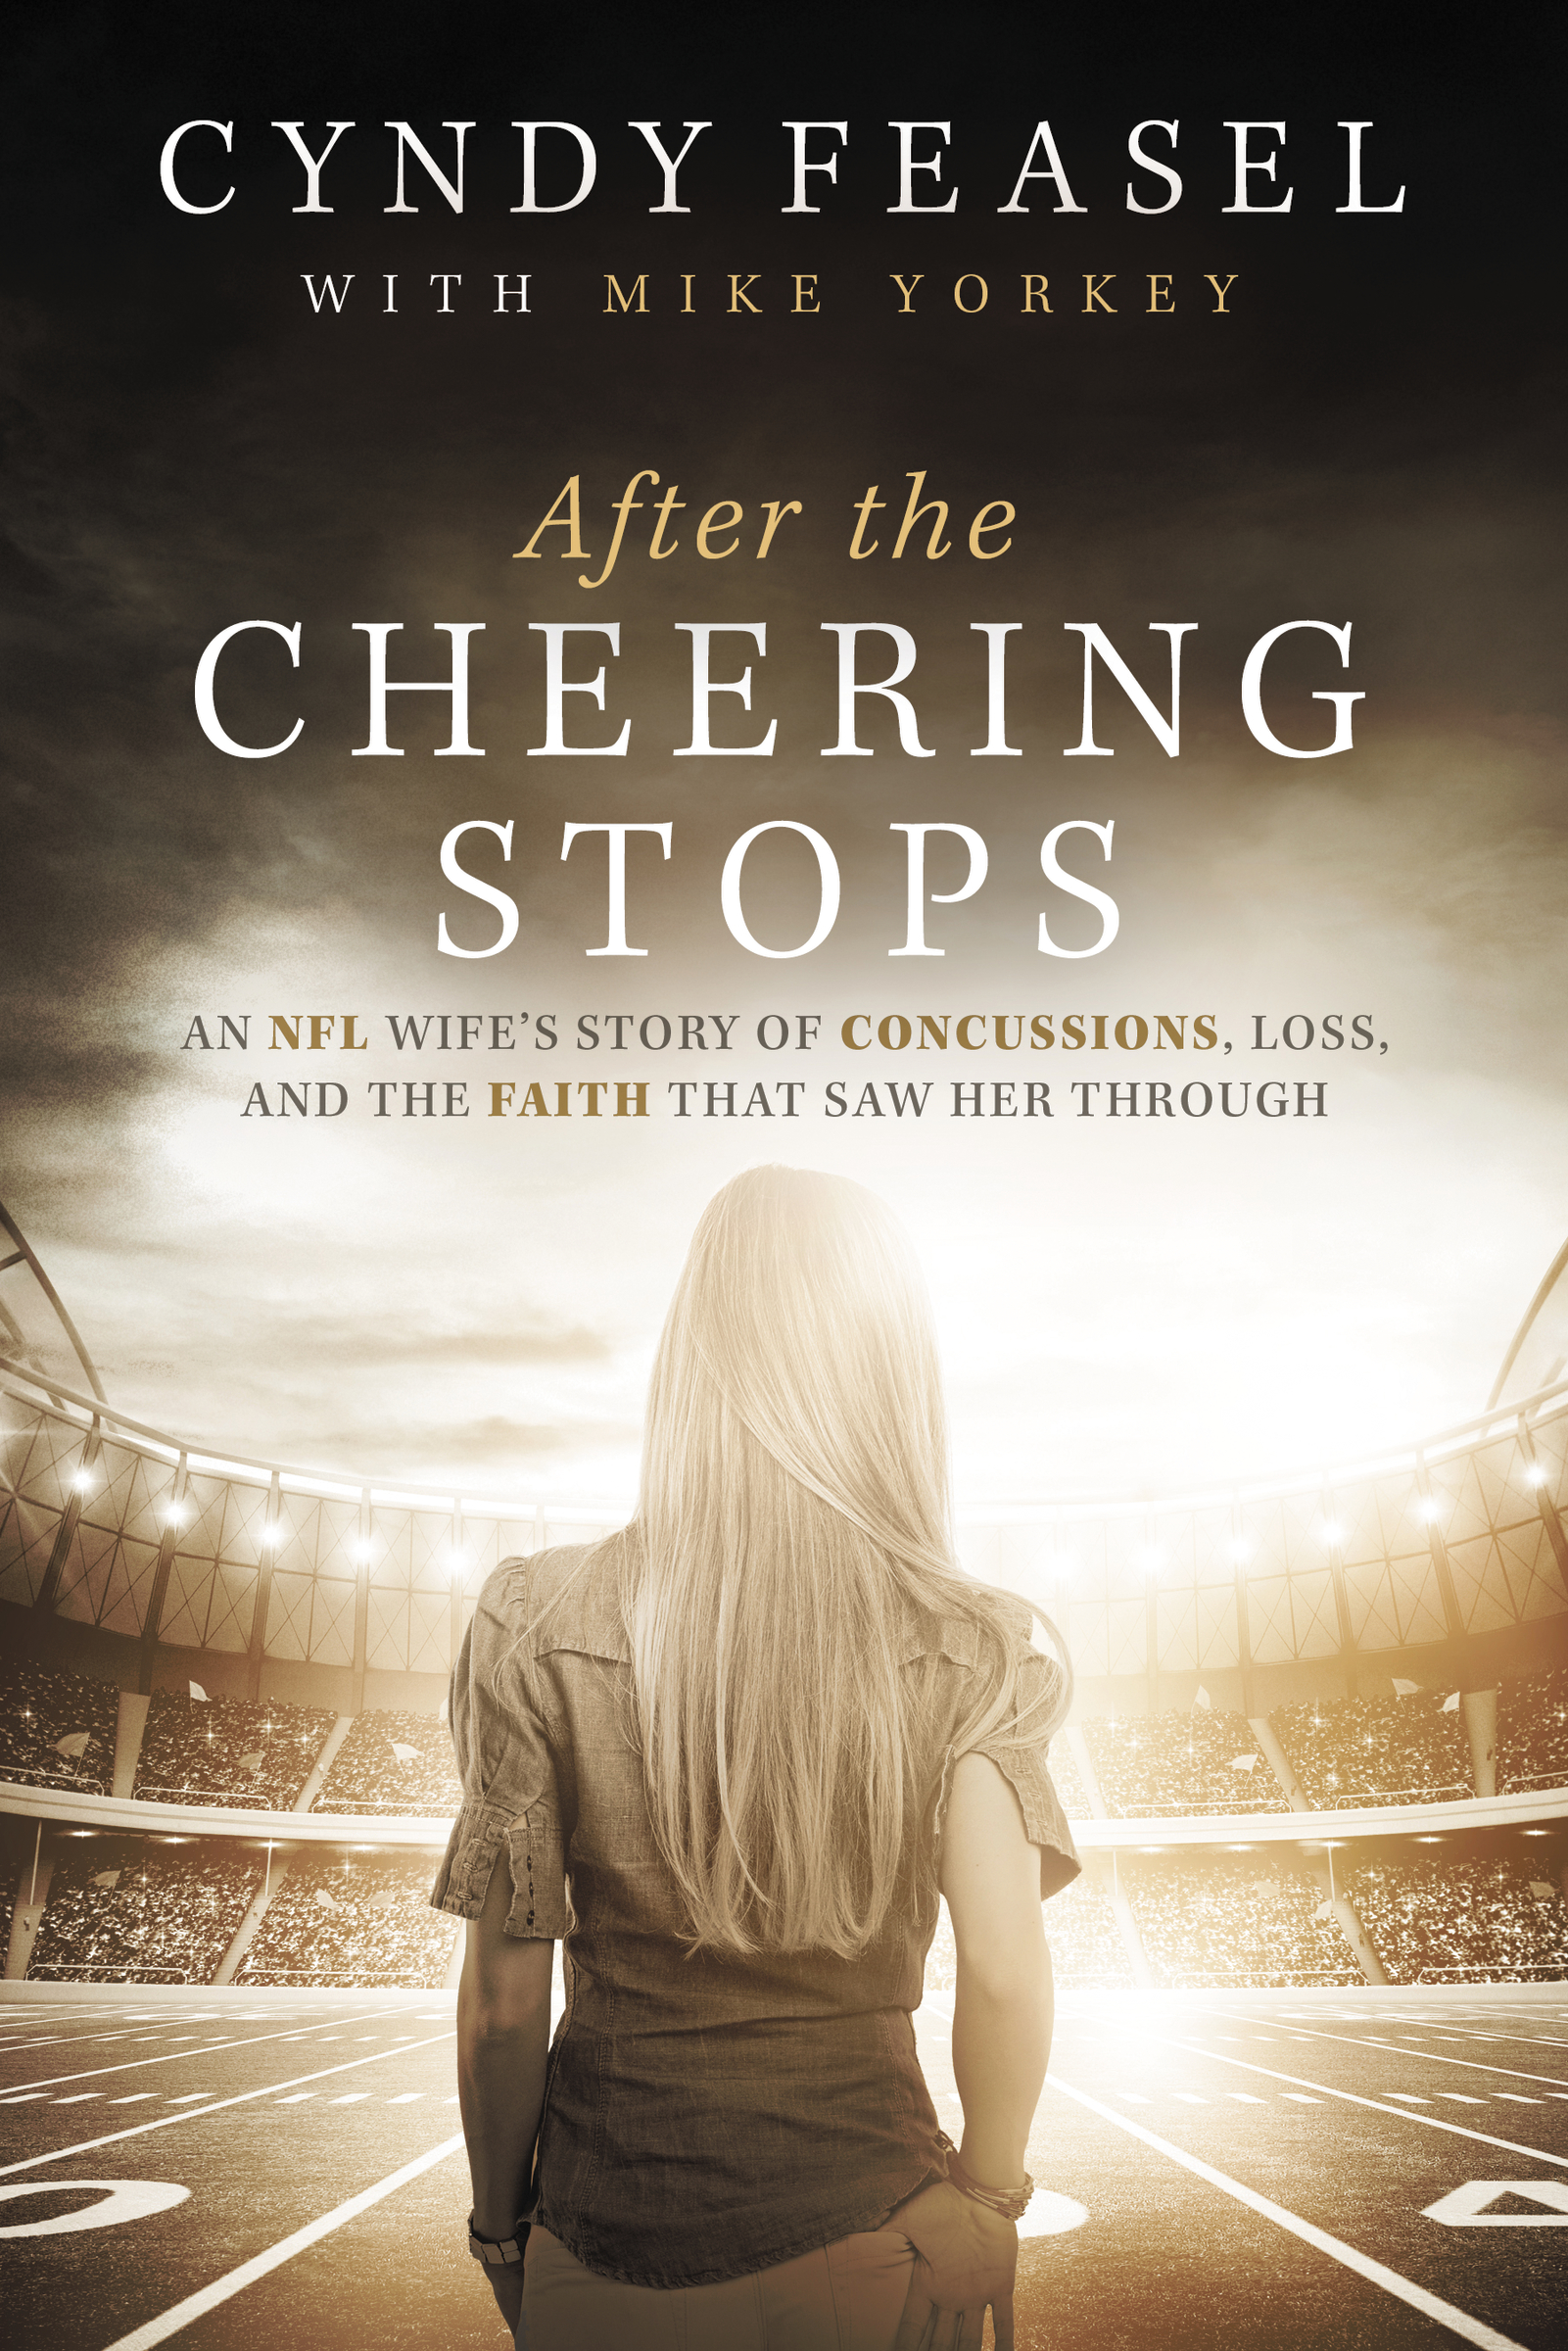 After the Cheering Stops An NFL Wife's Story of Concussions, Loss, and the Faith that Saw Her Through